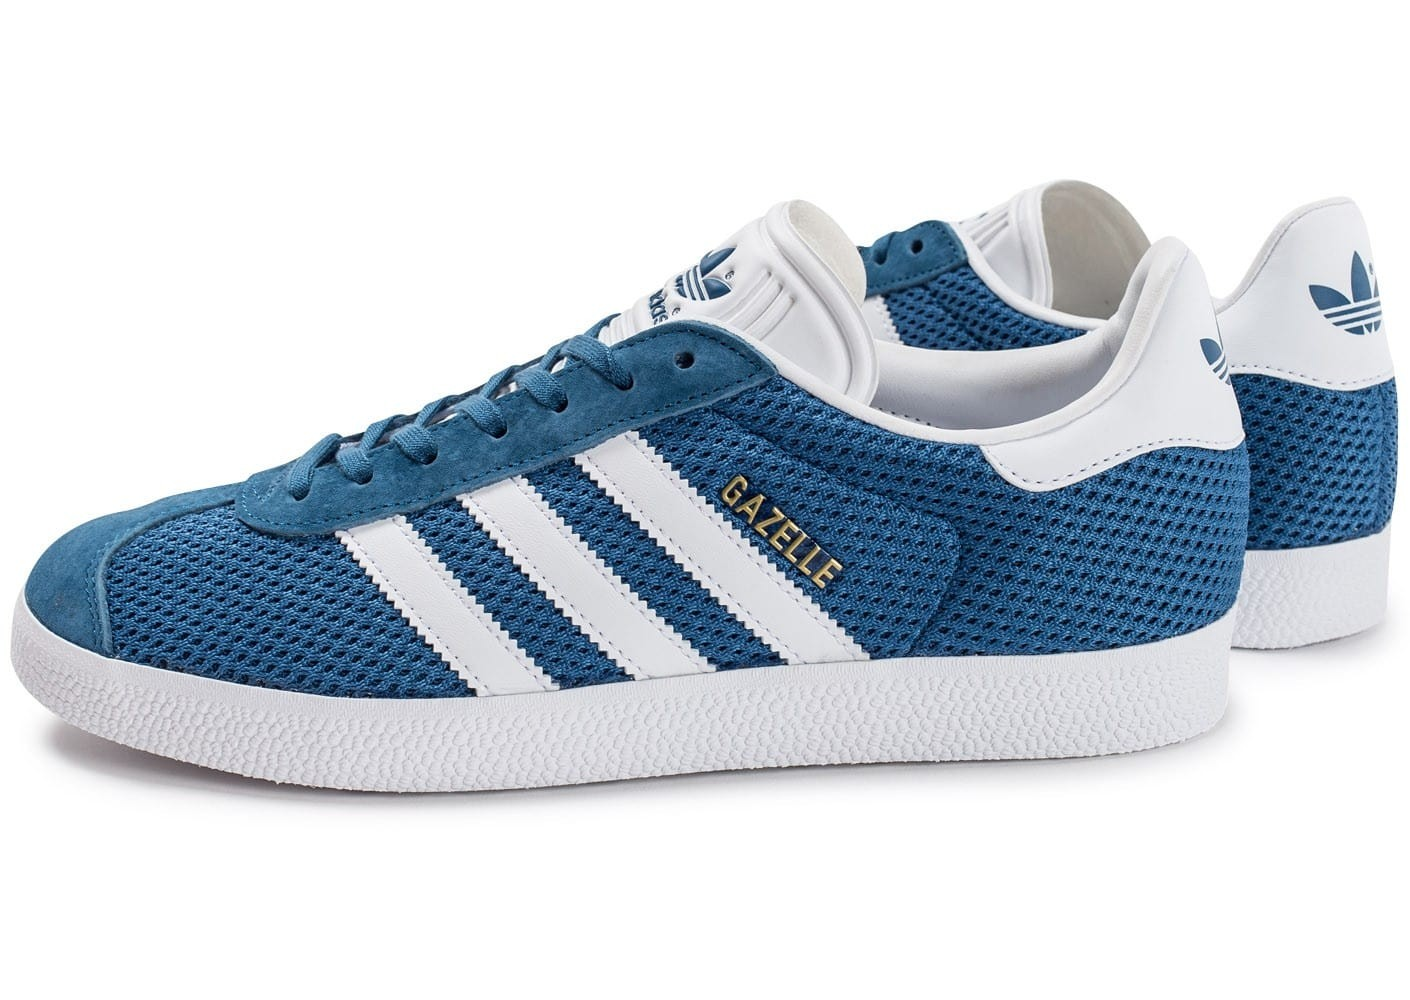 chaussure adidas homme bleu Off 53% - www.bashhguidelines.org